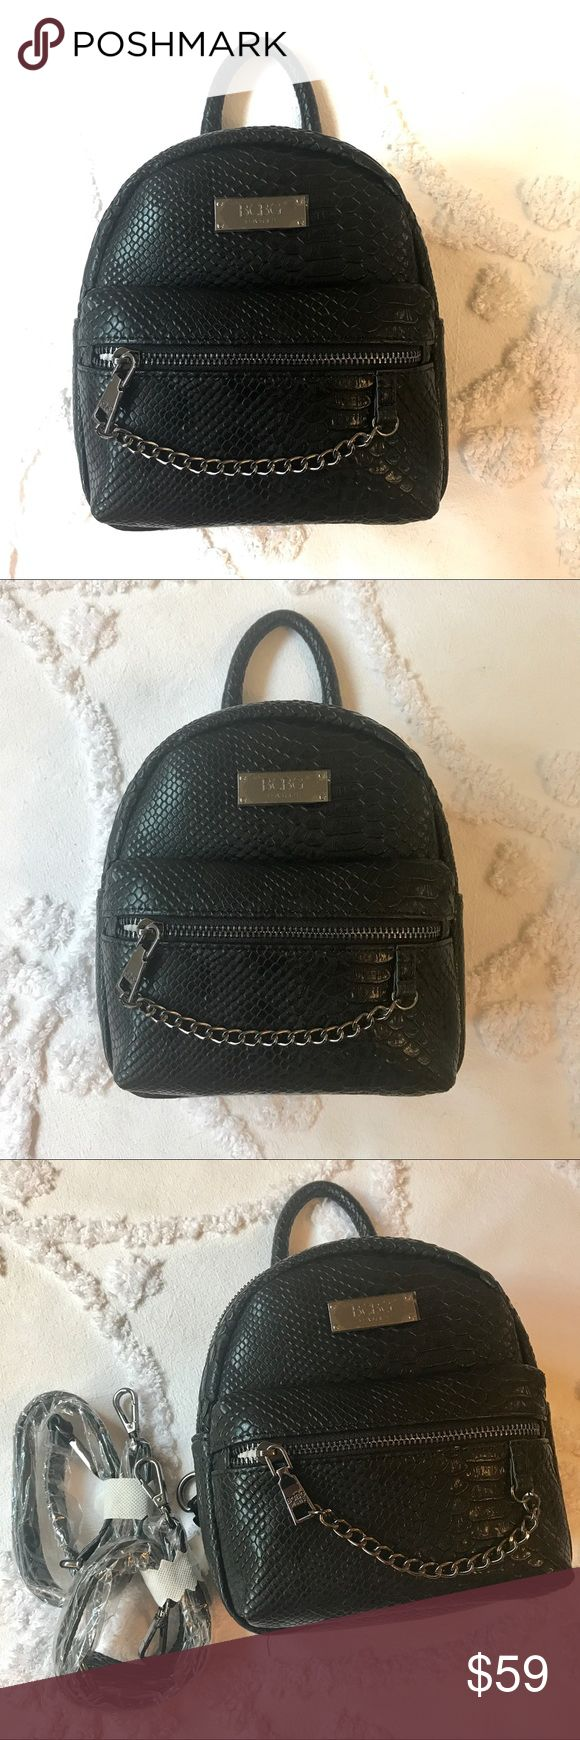 BCBG Paris Main Street Petite Backpack BCBG Paris Main Street Petite Backpack in Black Faux Snakeskin. This bag features faux snakeskin, silver-toned hardware, adjustable and detachable back straps, and a top carry handle. There is a front zip closure pocket. You can surely fit your essentials and more into this beauty! NWT. Measurements listed are approximate. BCBG Bags Backpacks